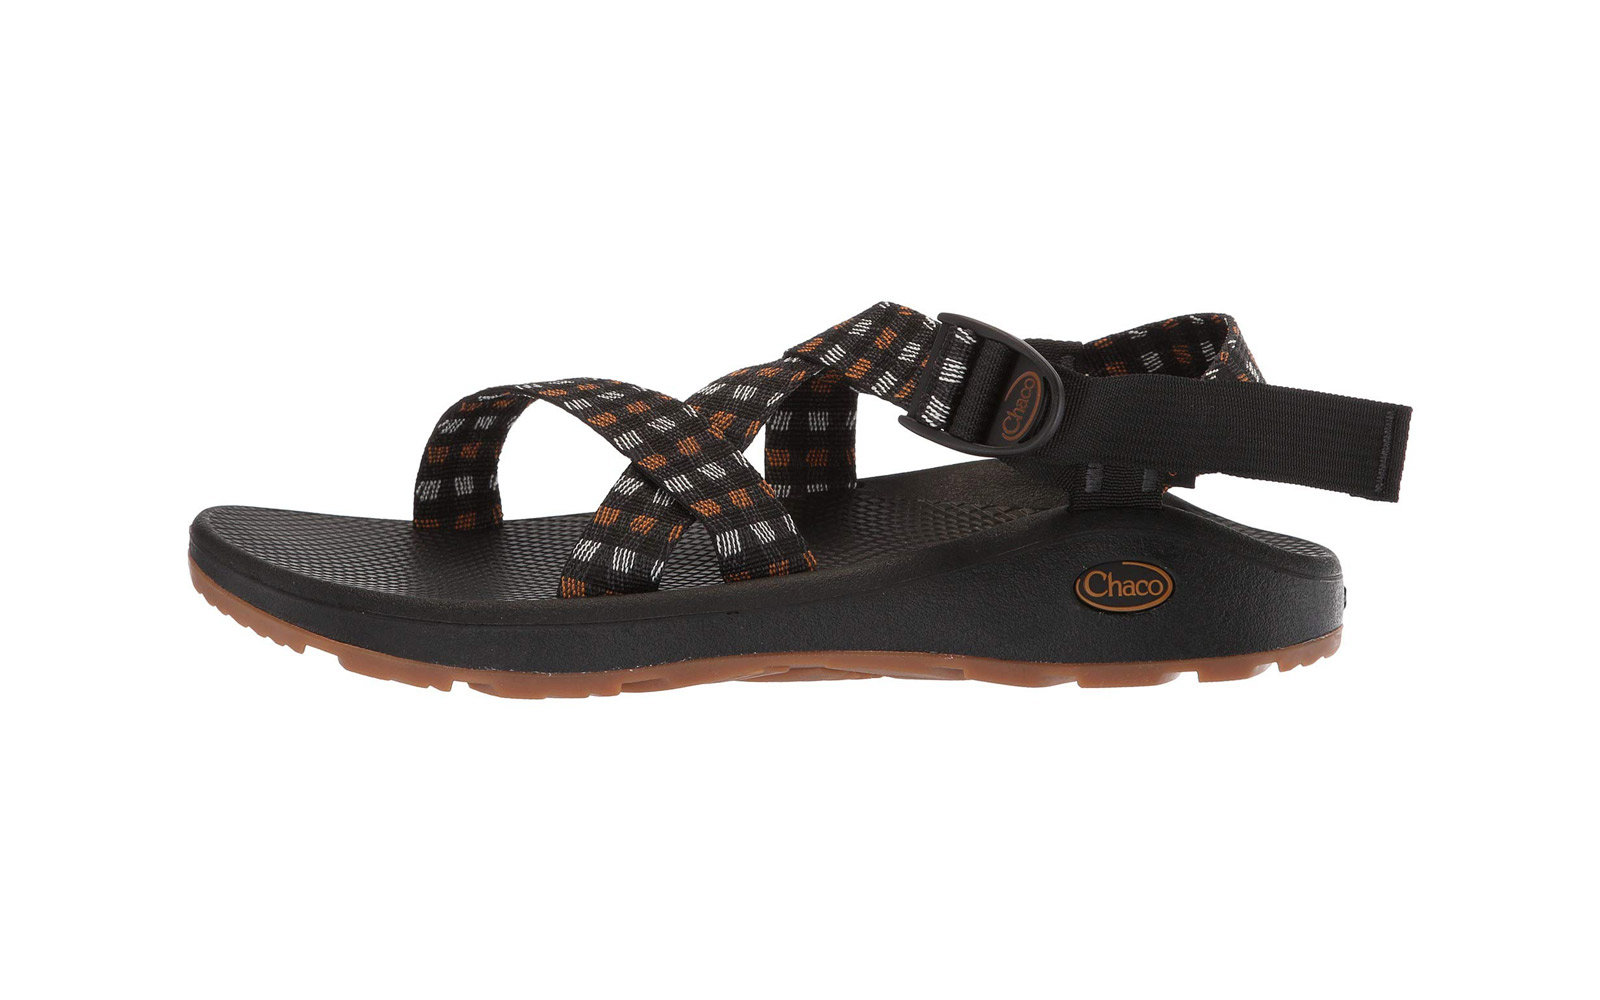 a7cefc7f2713c The Best Men s Sandals to Pack for Your Next Vacation